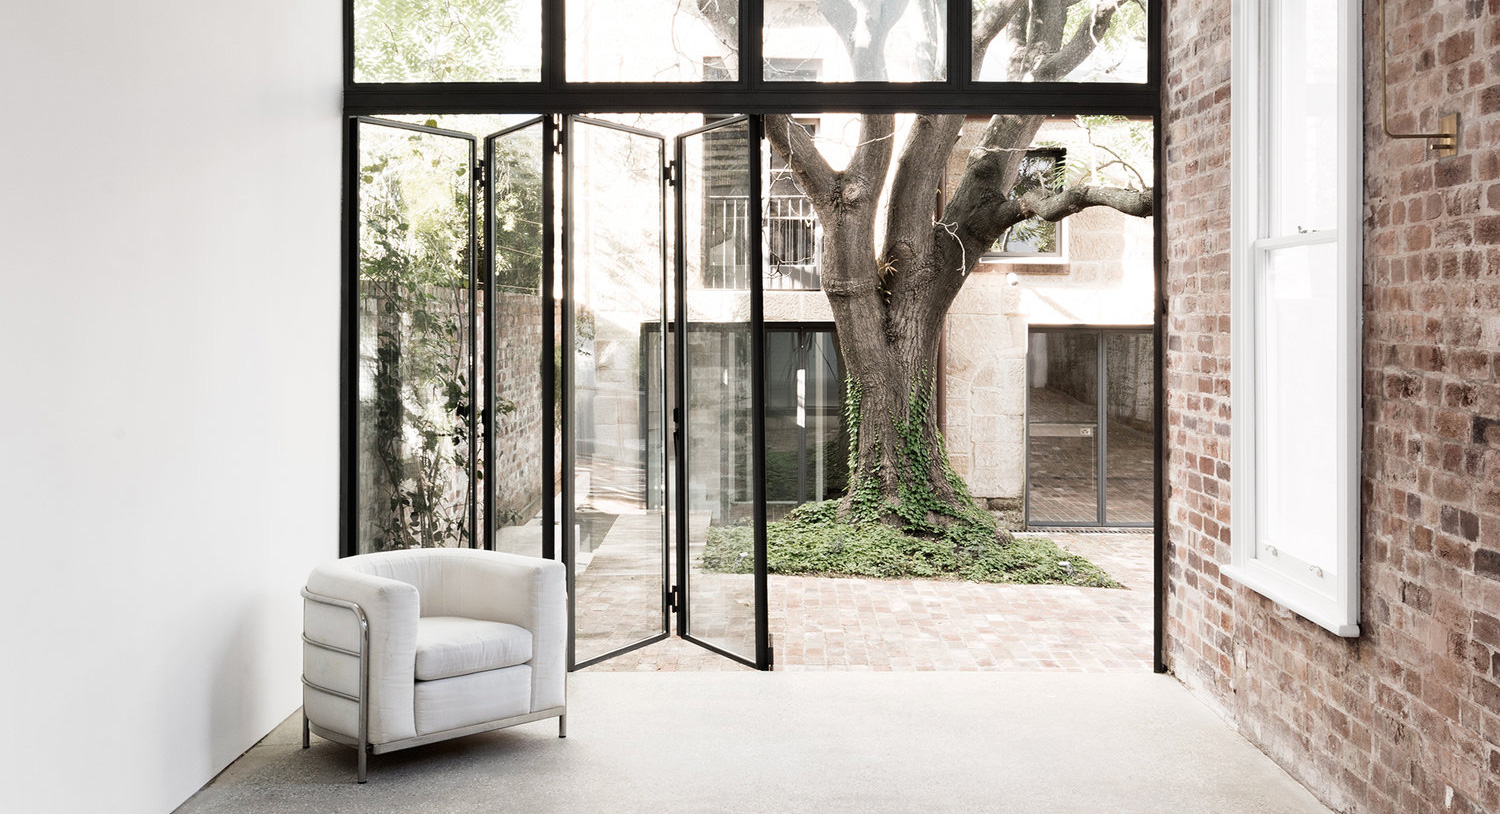 How Italian Design Has Inspired This Superb Sydney Home